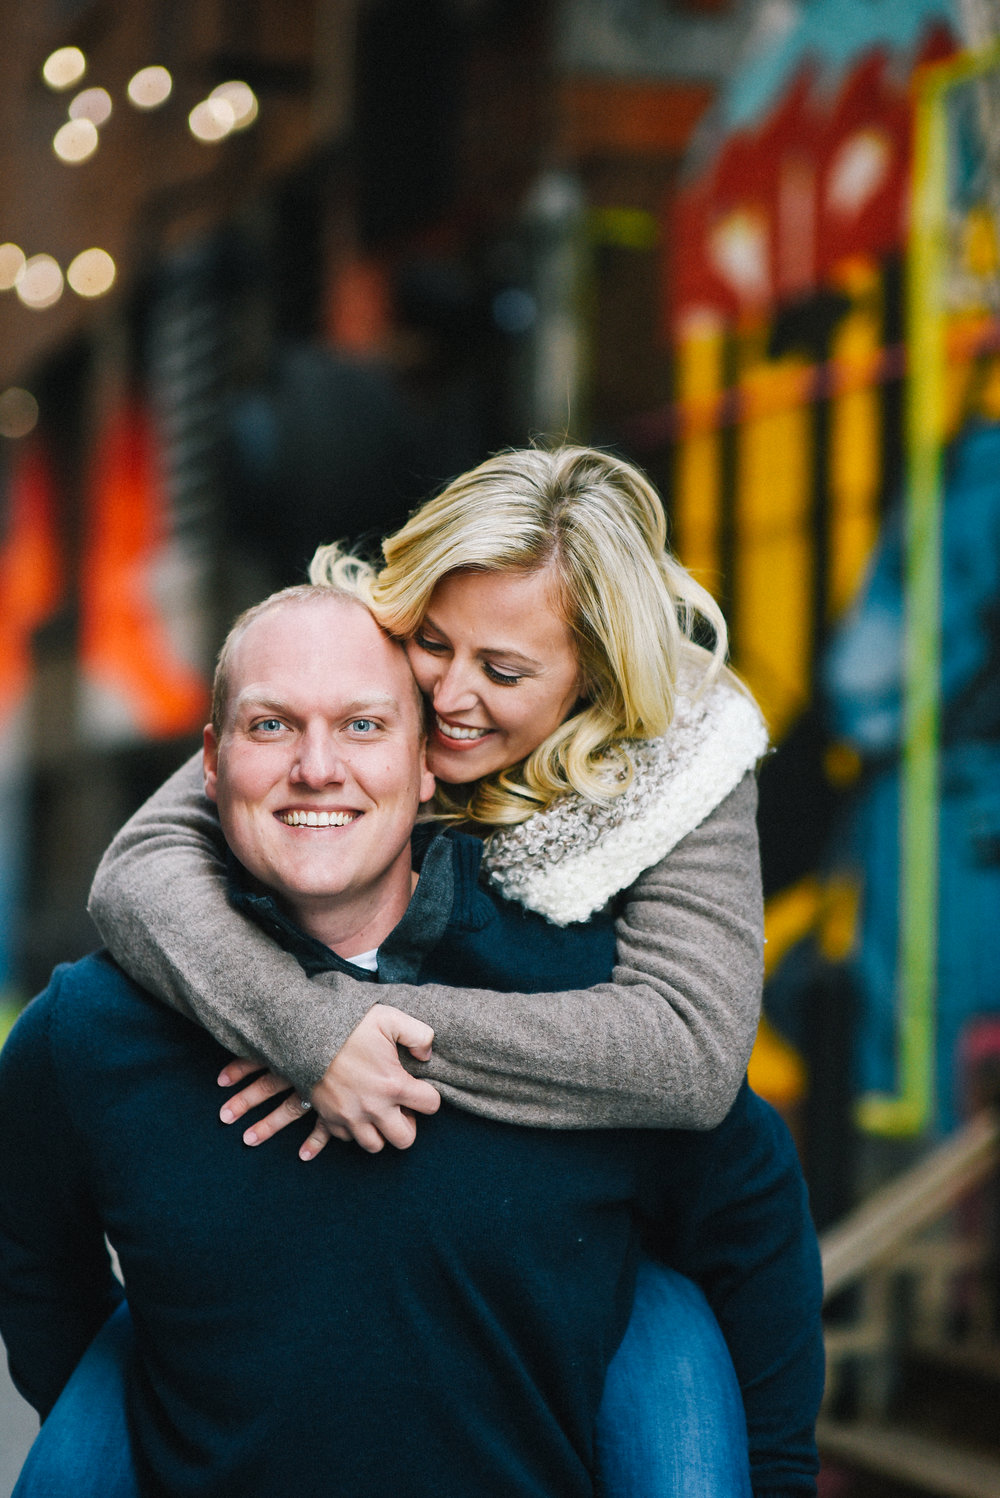 Downtown_Detroit_Engagement_Photos-34.jpg